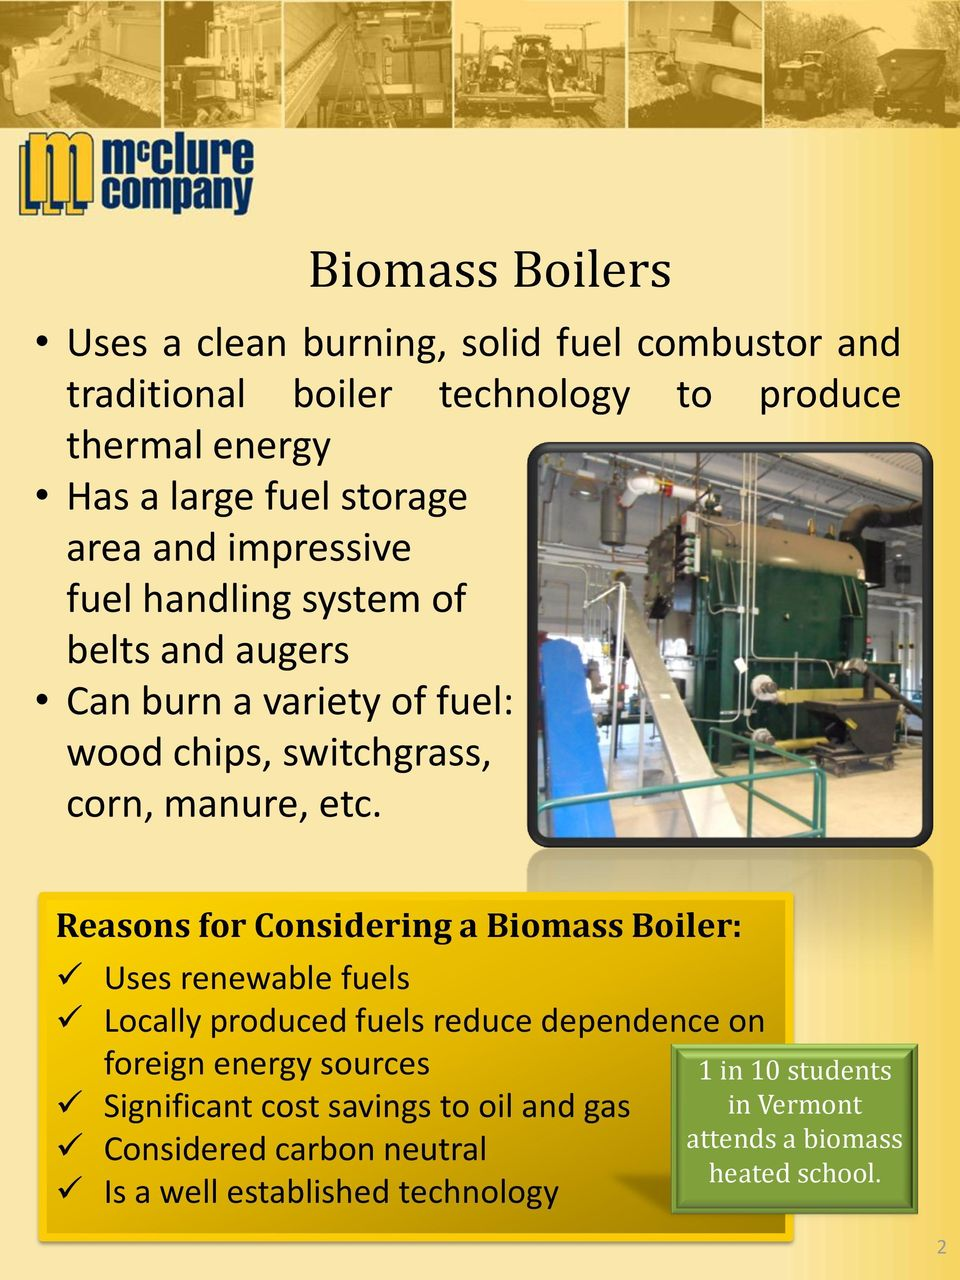 Reasons for Considering a Biomass Boiler: Uses renewable fuels Locally produced fuels reduce dependence on foreign energy sources Significant